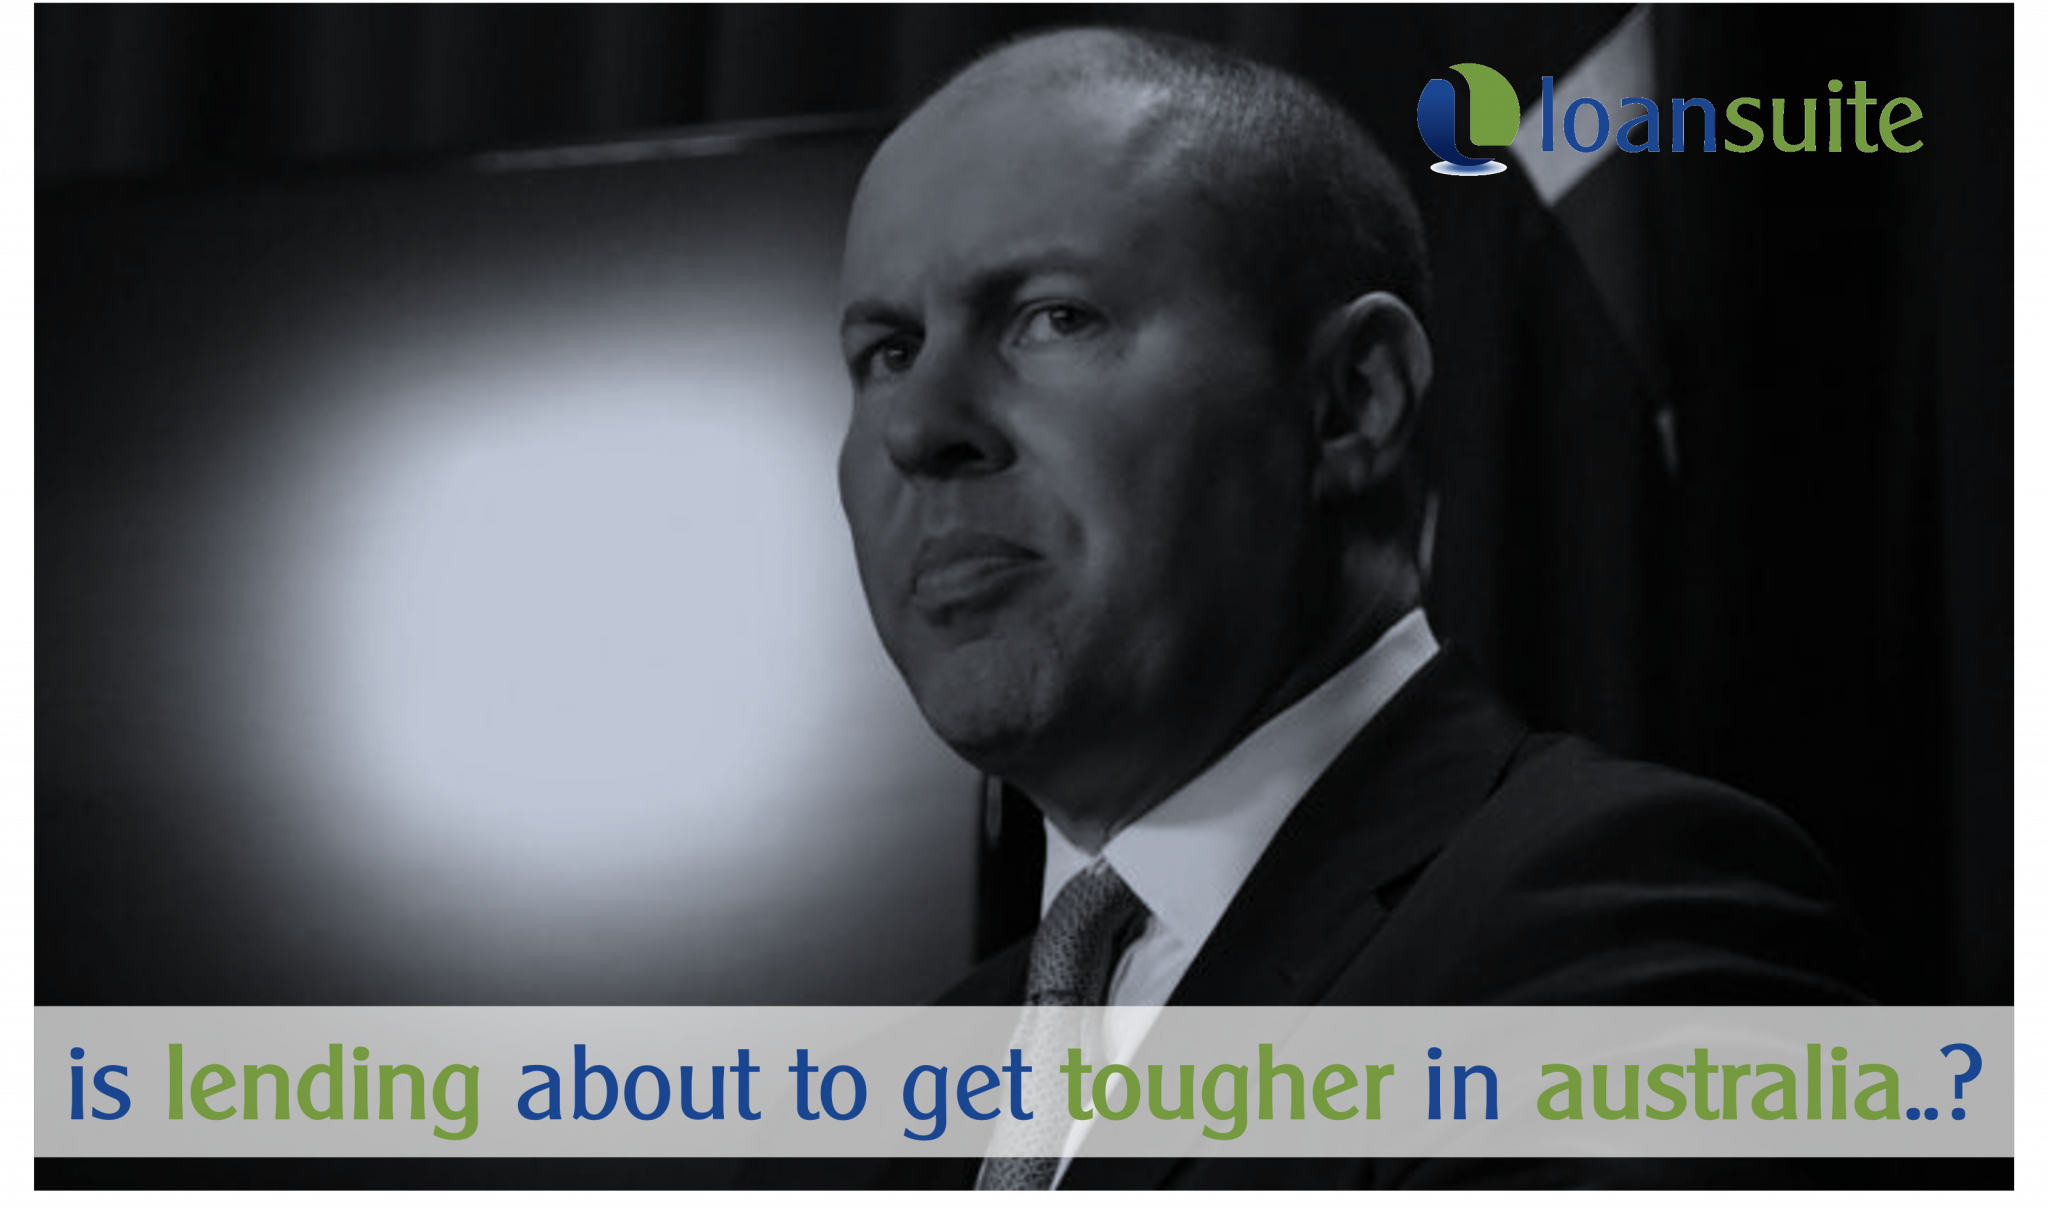 Could Lending Get Tougher in Australia - Loansuite - Mortgage Brokers to Australian Expats